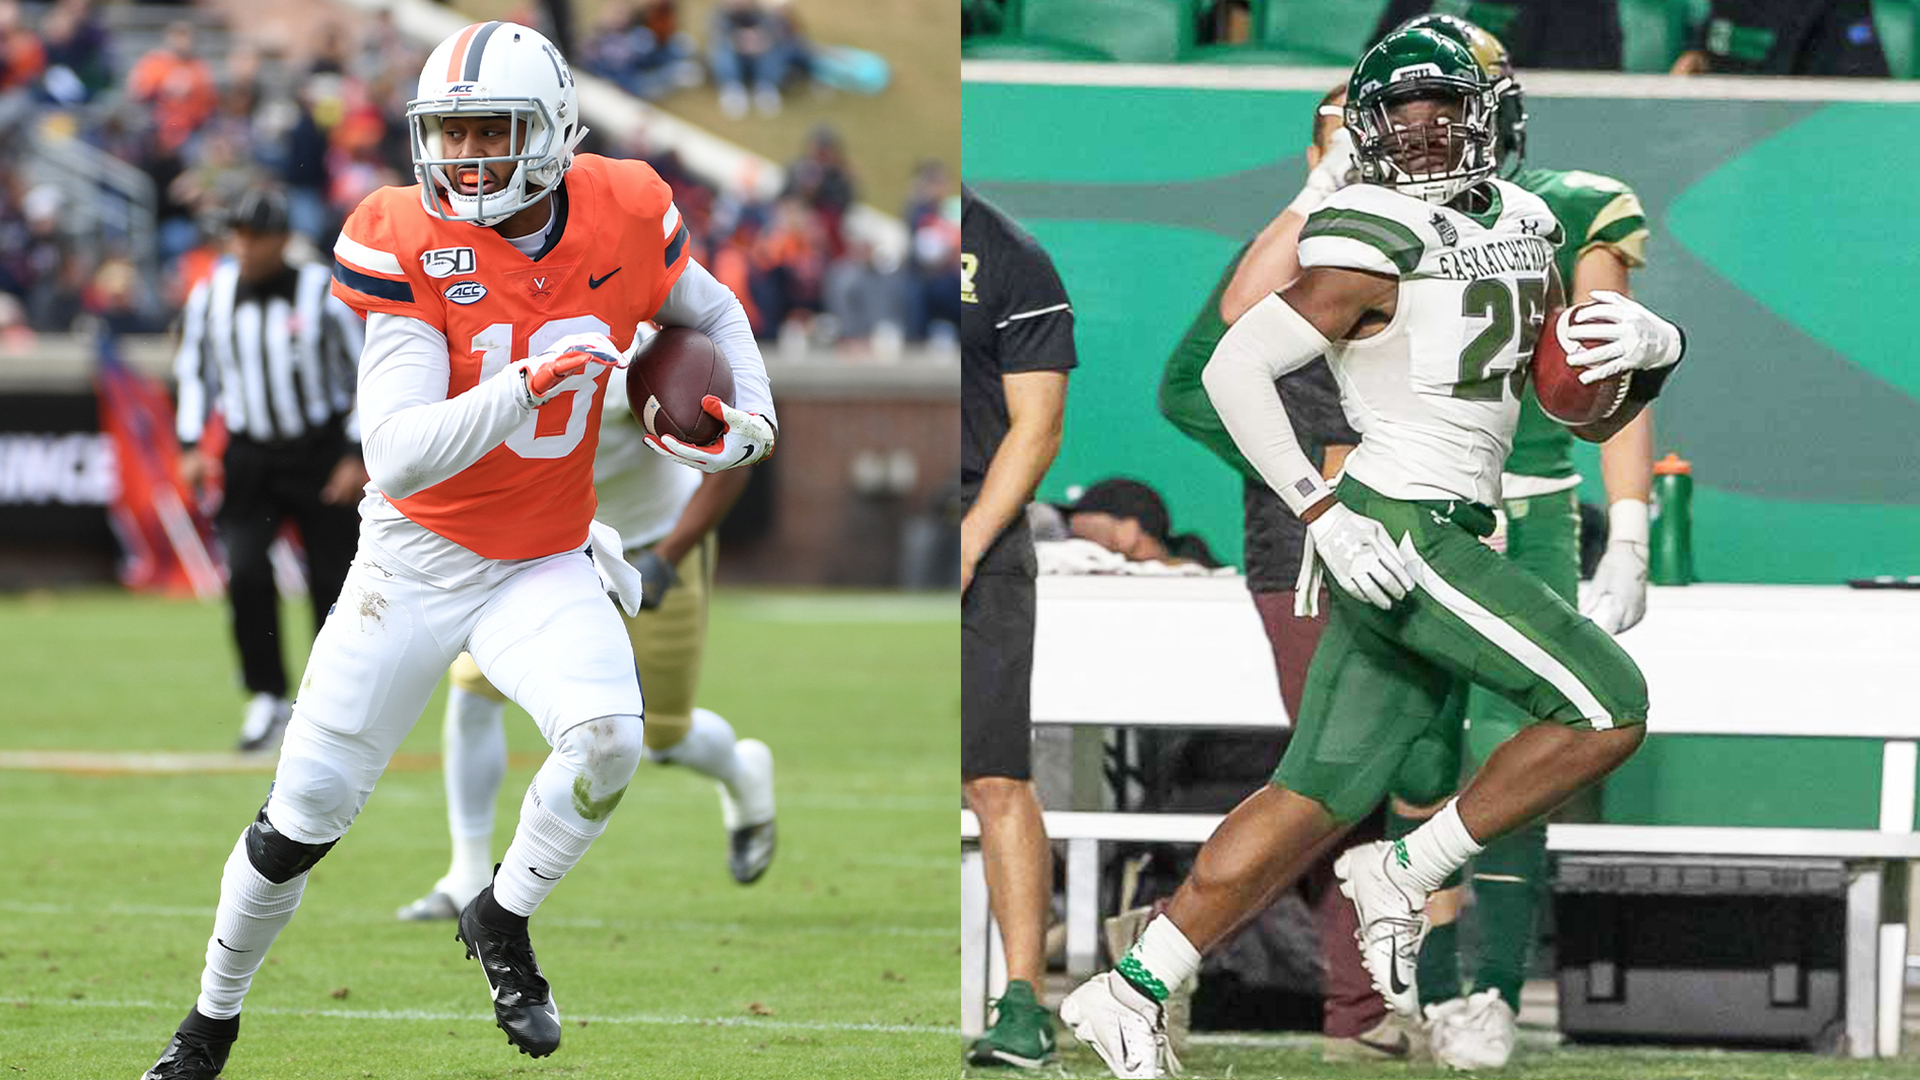 2021 Draft: Riders add ratio flexibility with top 2 picks